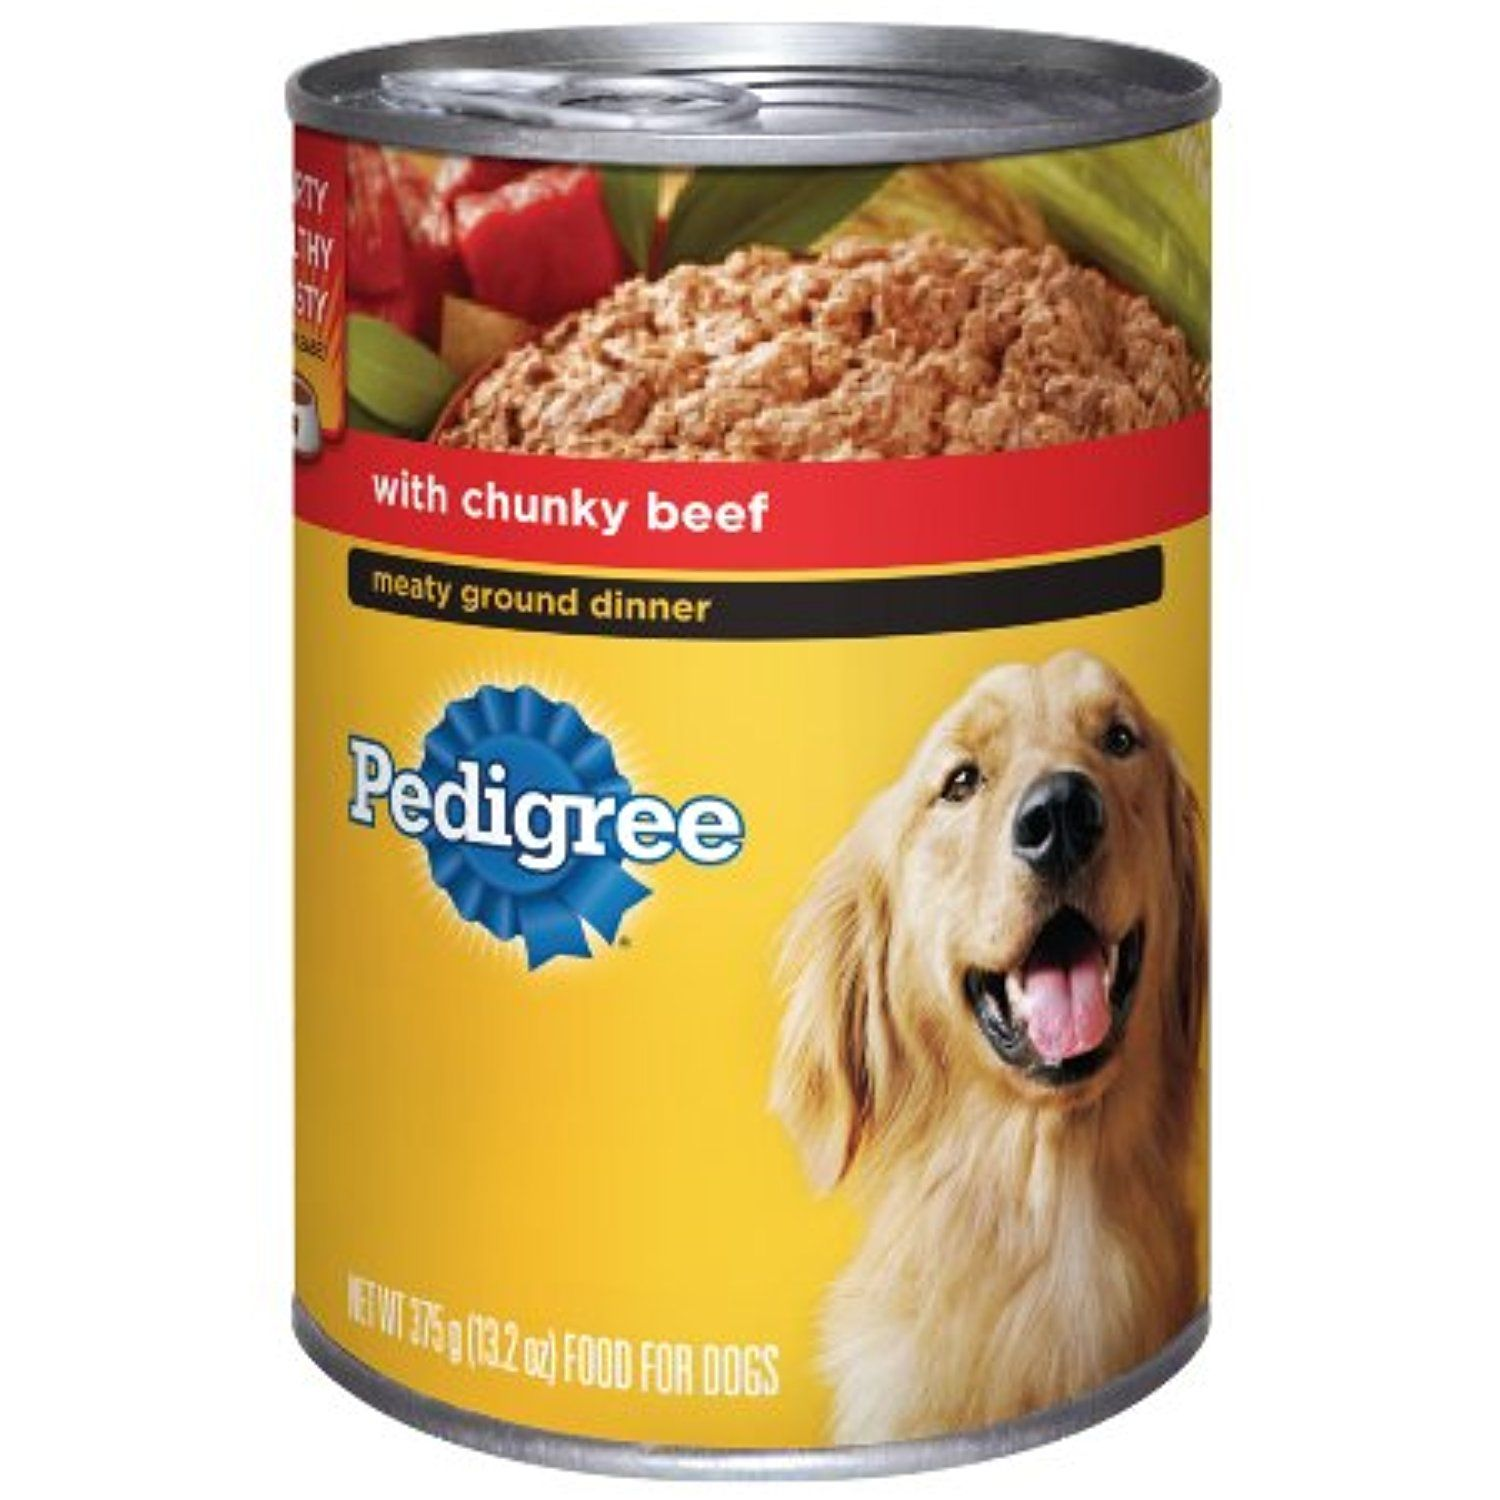 Pedigree Meaty Ground Dinner Stew With Chunky Beef Food For Adult